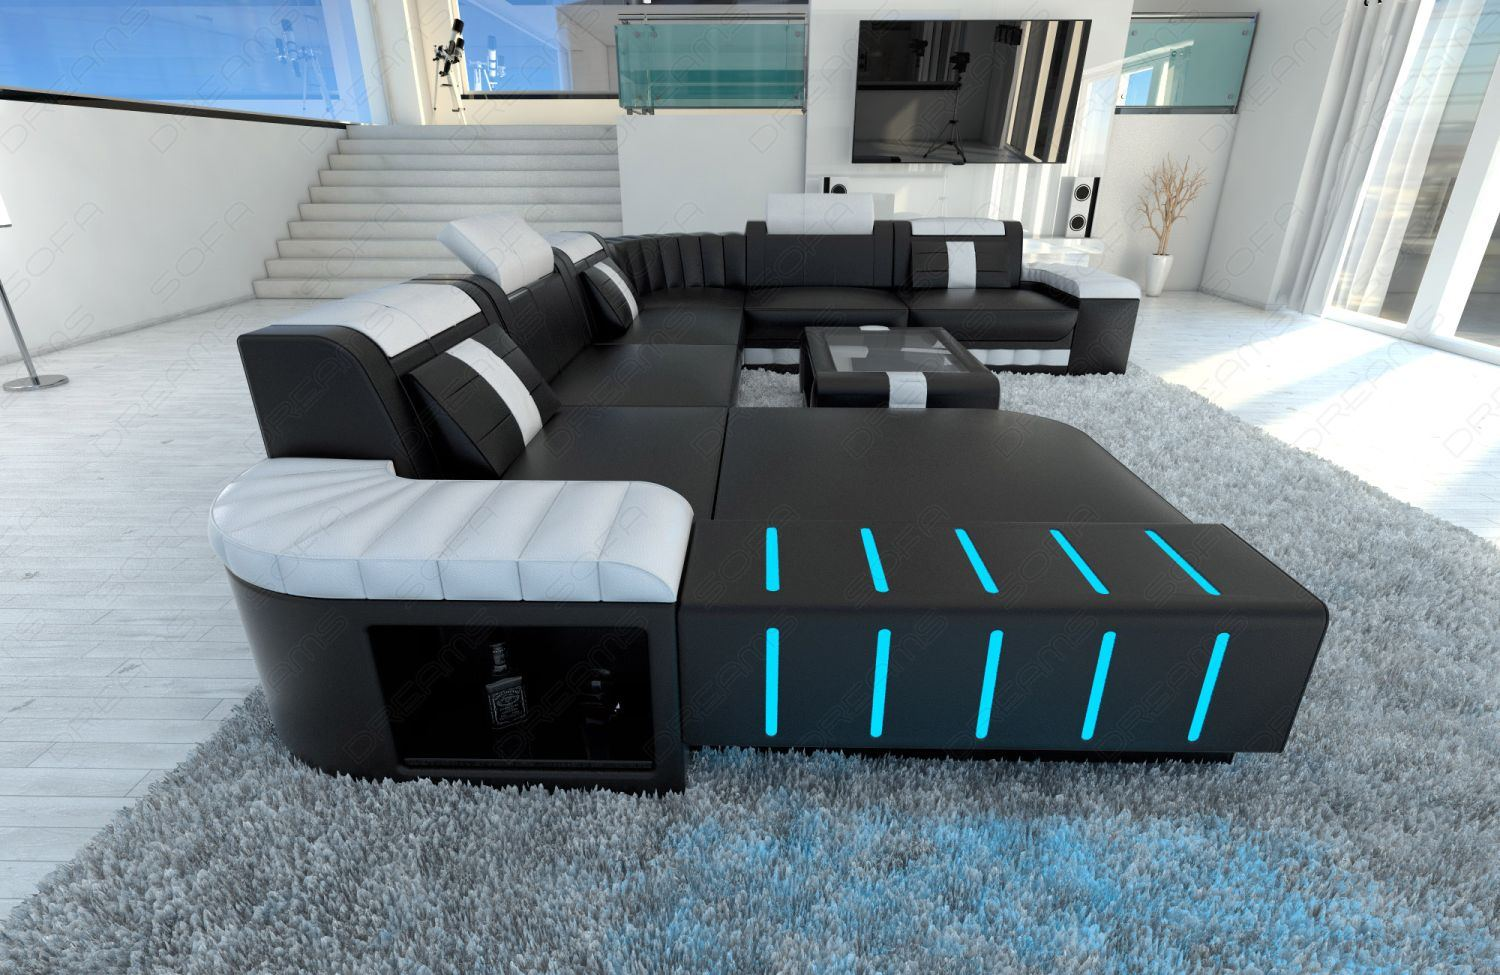 sofa bellagio xxl leather sofa led lighting colour. Black Bedroom Furniture Sets. Home Design Ideas